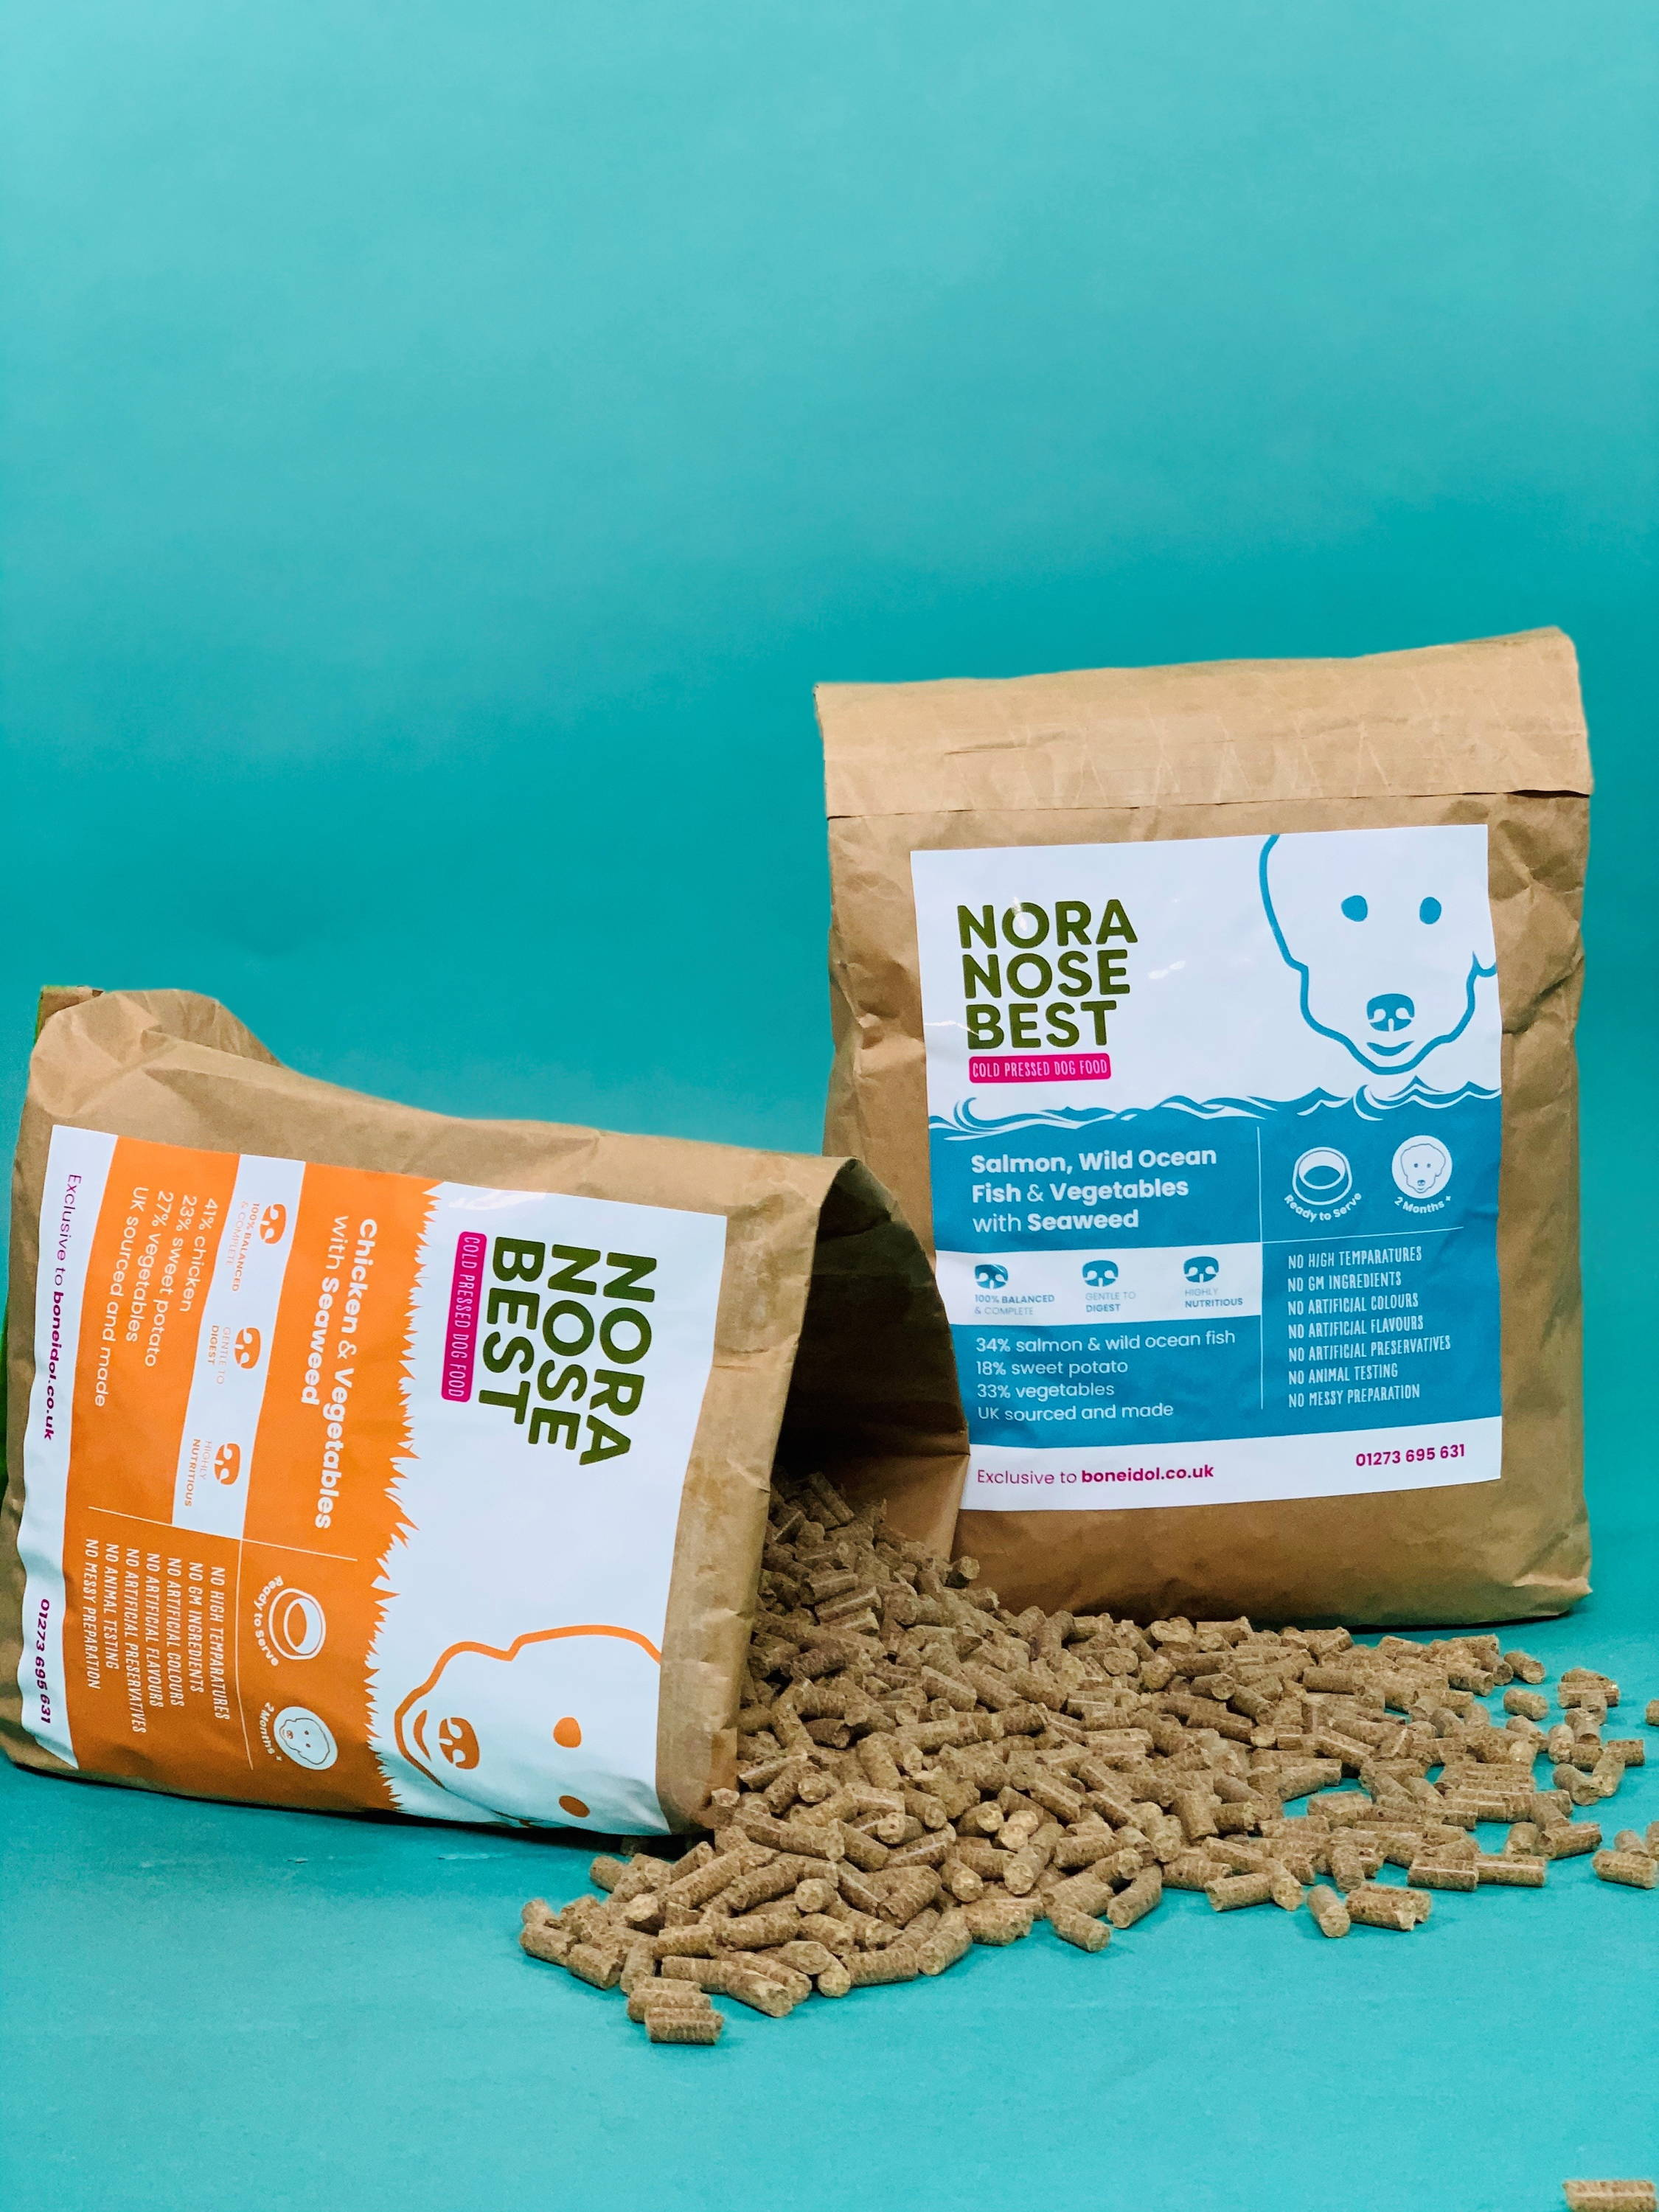 Nora Nose Best Cold Pressed Dog Food, Nora Nose Best Dog Food, Nora Nose Best Dog Food, Healthy dog food, Grain Free Dog Food, Salmon, Fish, Chicken, Healthy Dog Food